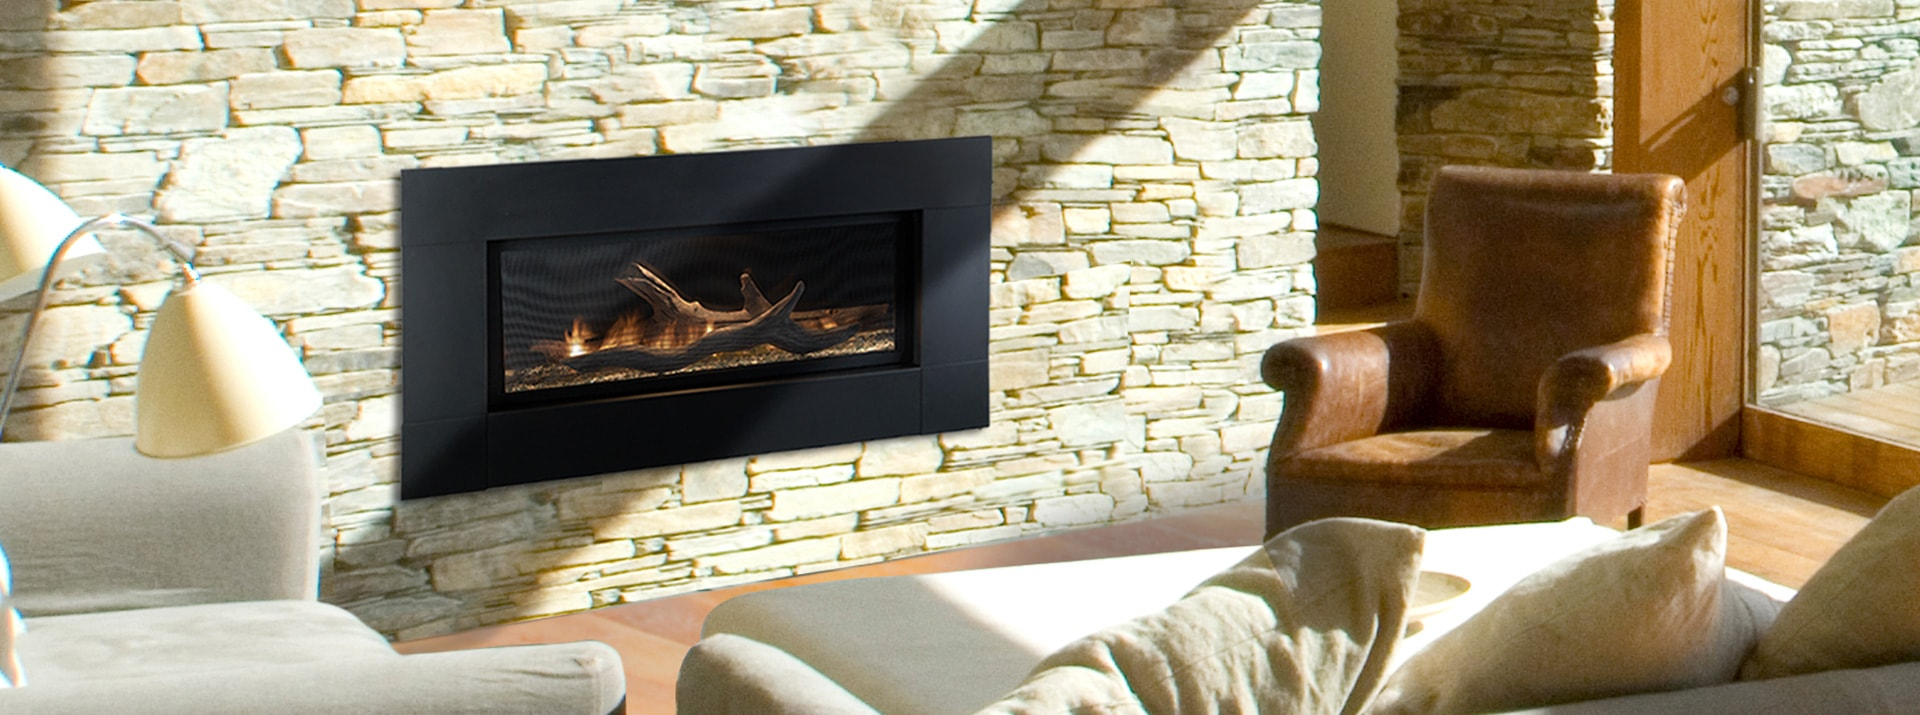 ventless linear gas fireplace